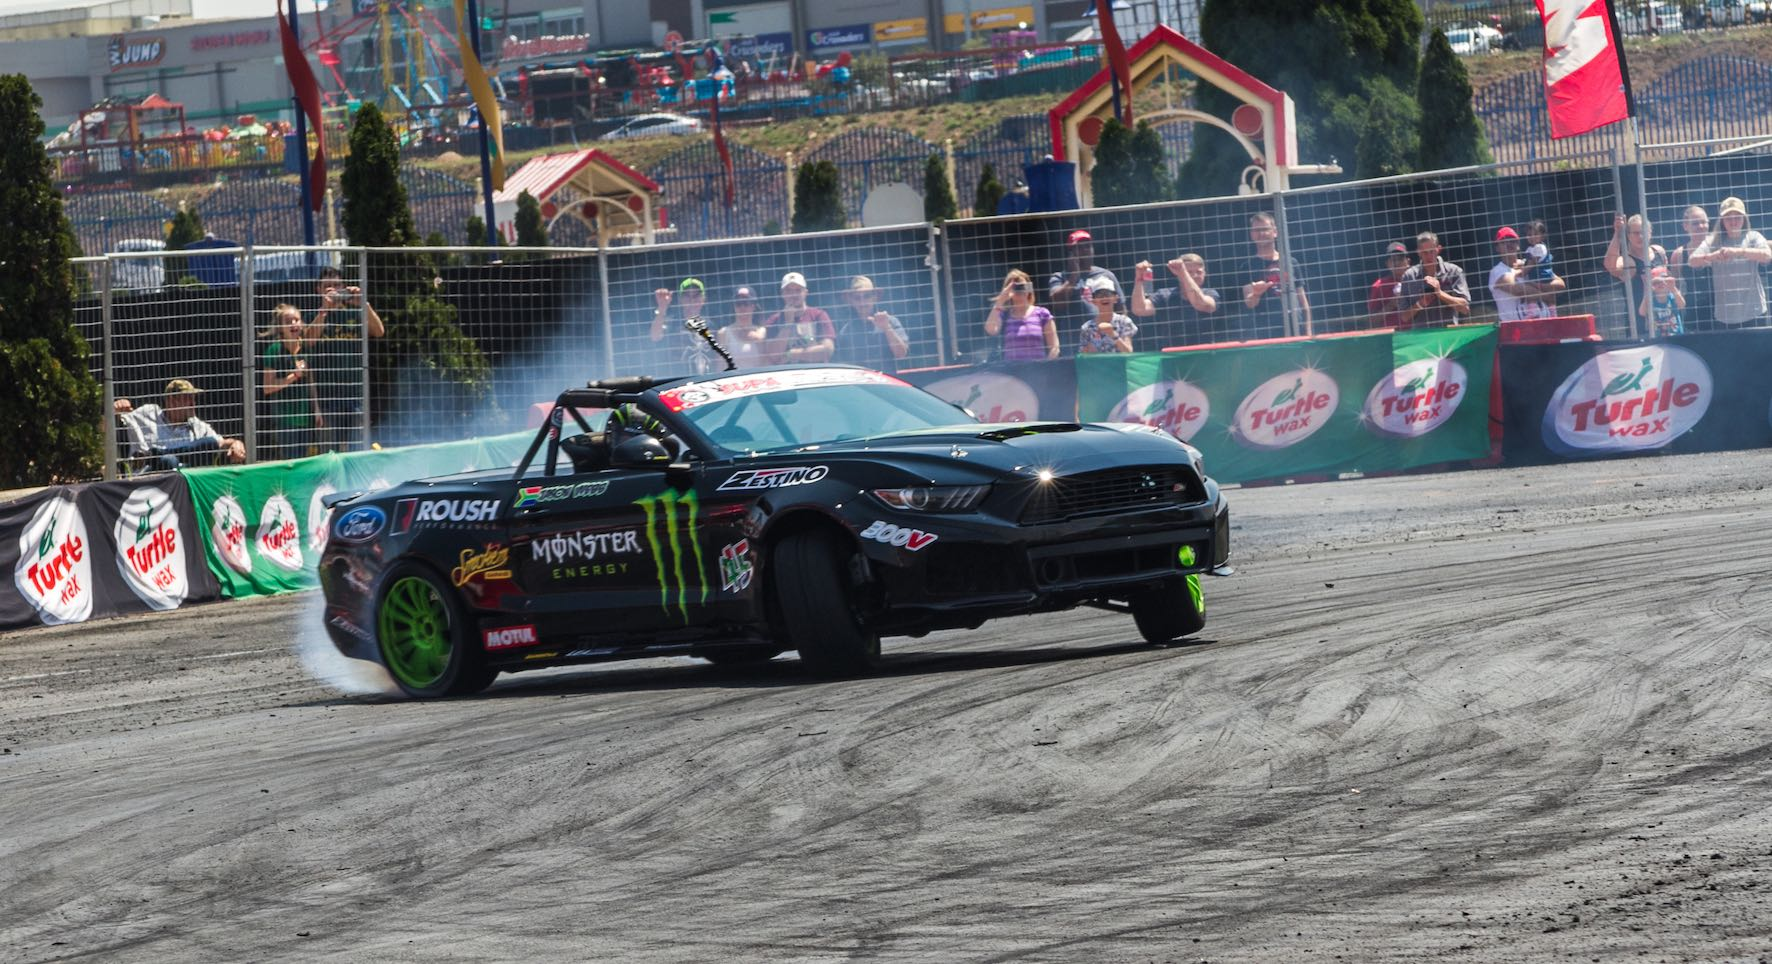 Drifting action at its best from Round 6 of the 2018 SupaDrift Series